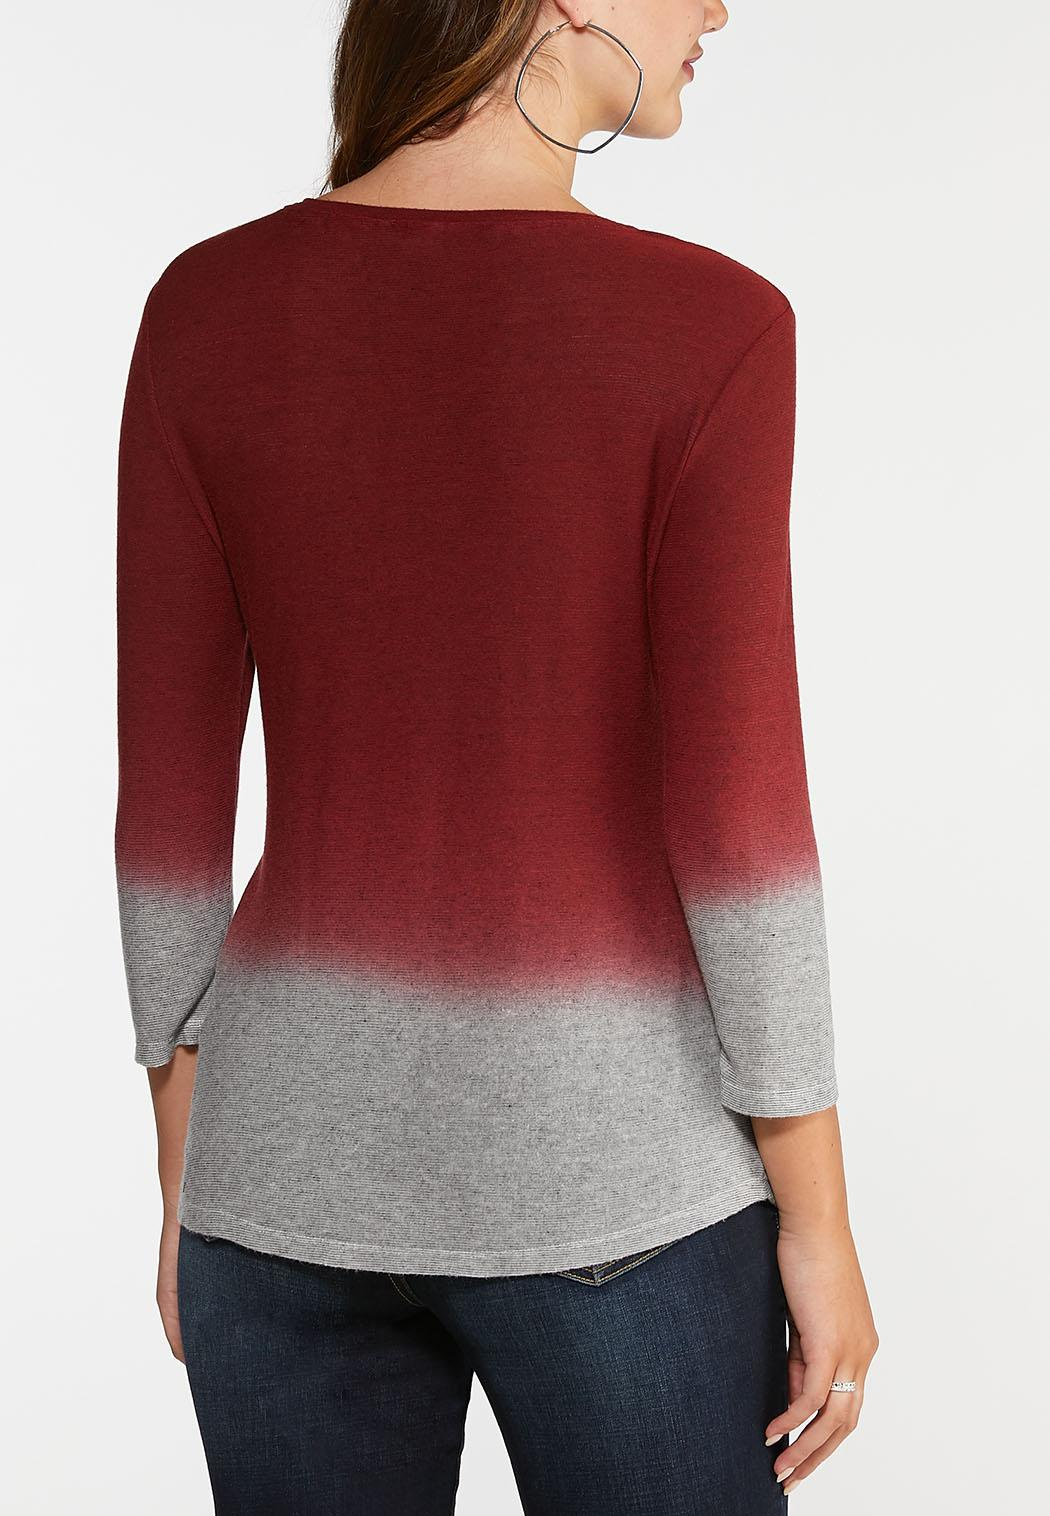 Knotted Seasons Change Top (Item #44017949)